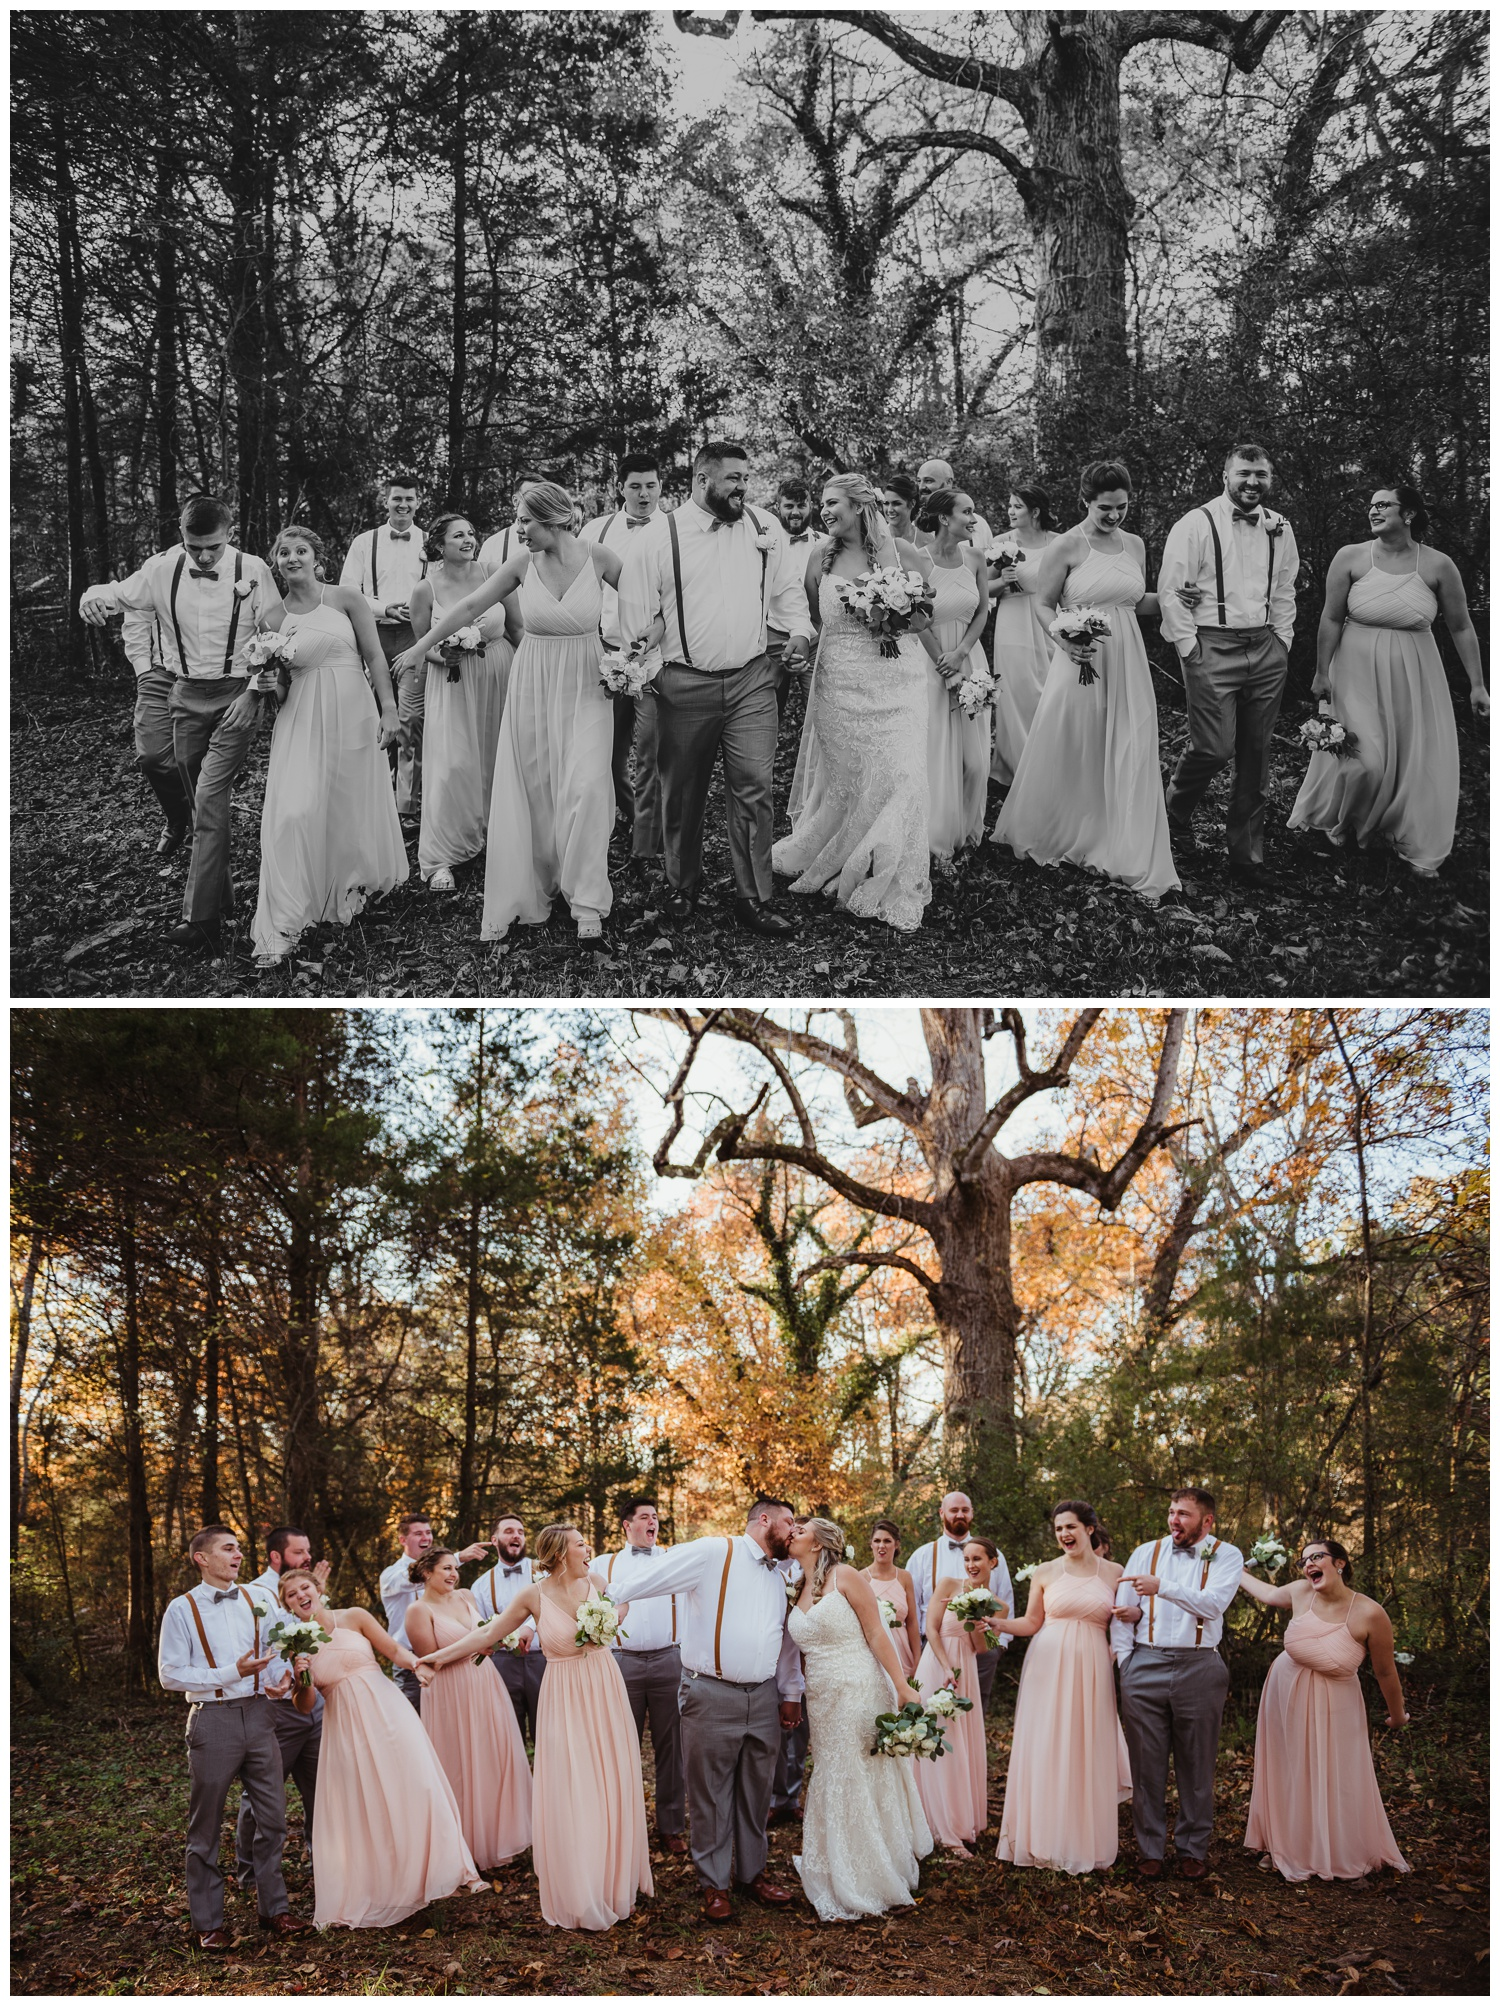 The bride and groom pose with their bridal party in the woods after their wedding ceremony at The Warren Estate, images by Rose Trail Images of Rolesville, NC.